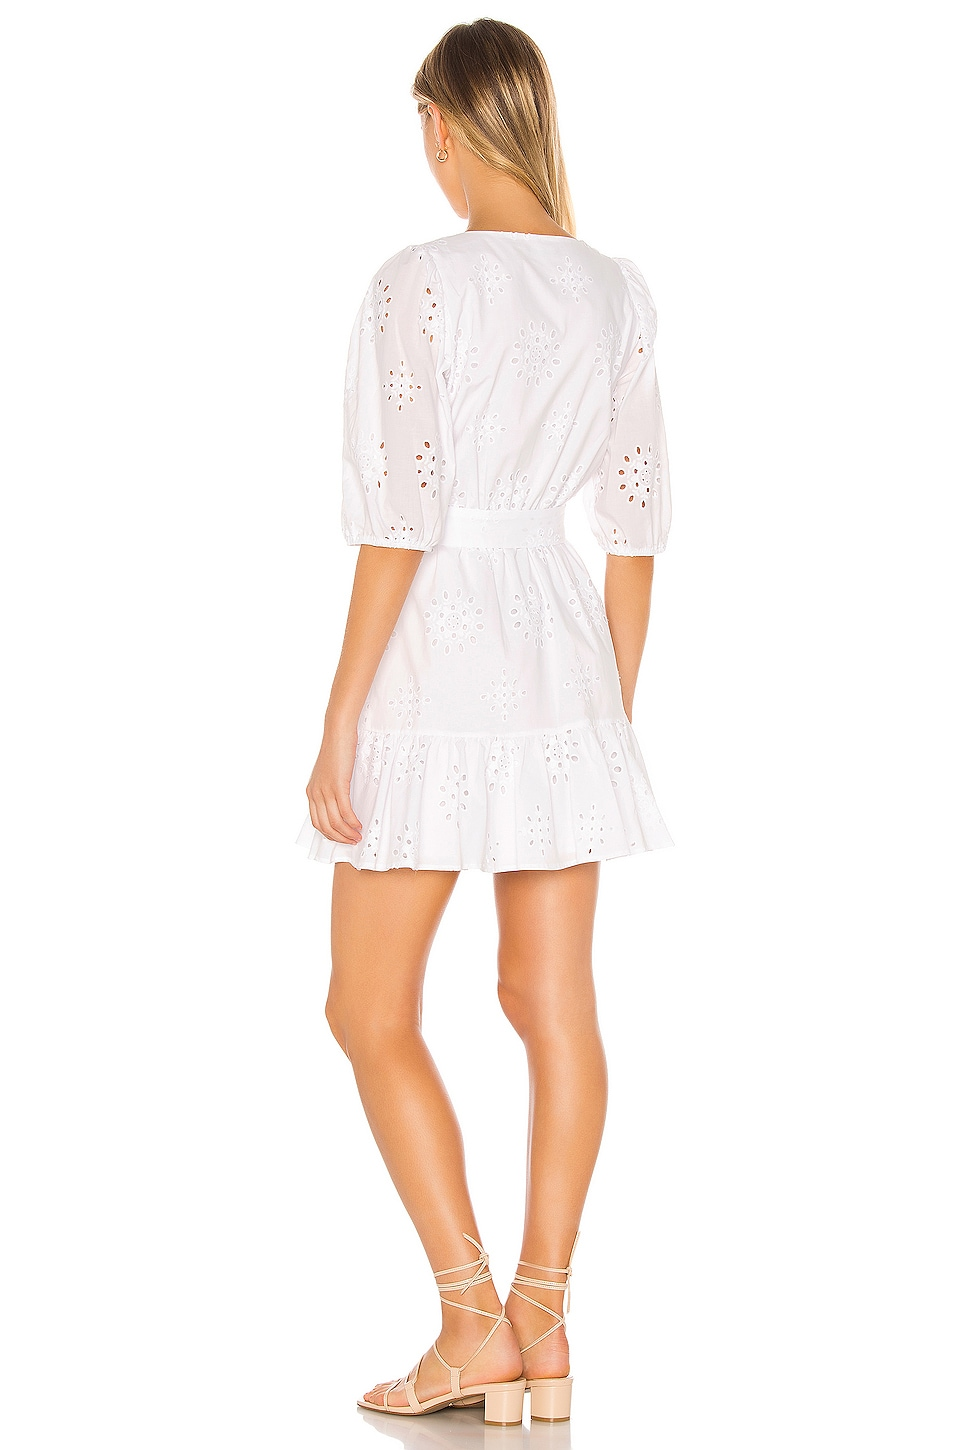 Cotton Eyelet Tie Waist Dress, view 3, click to view large image.